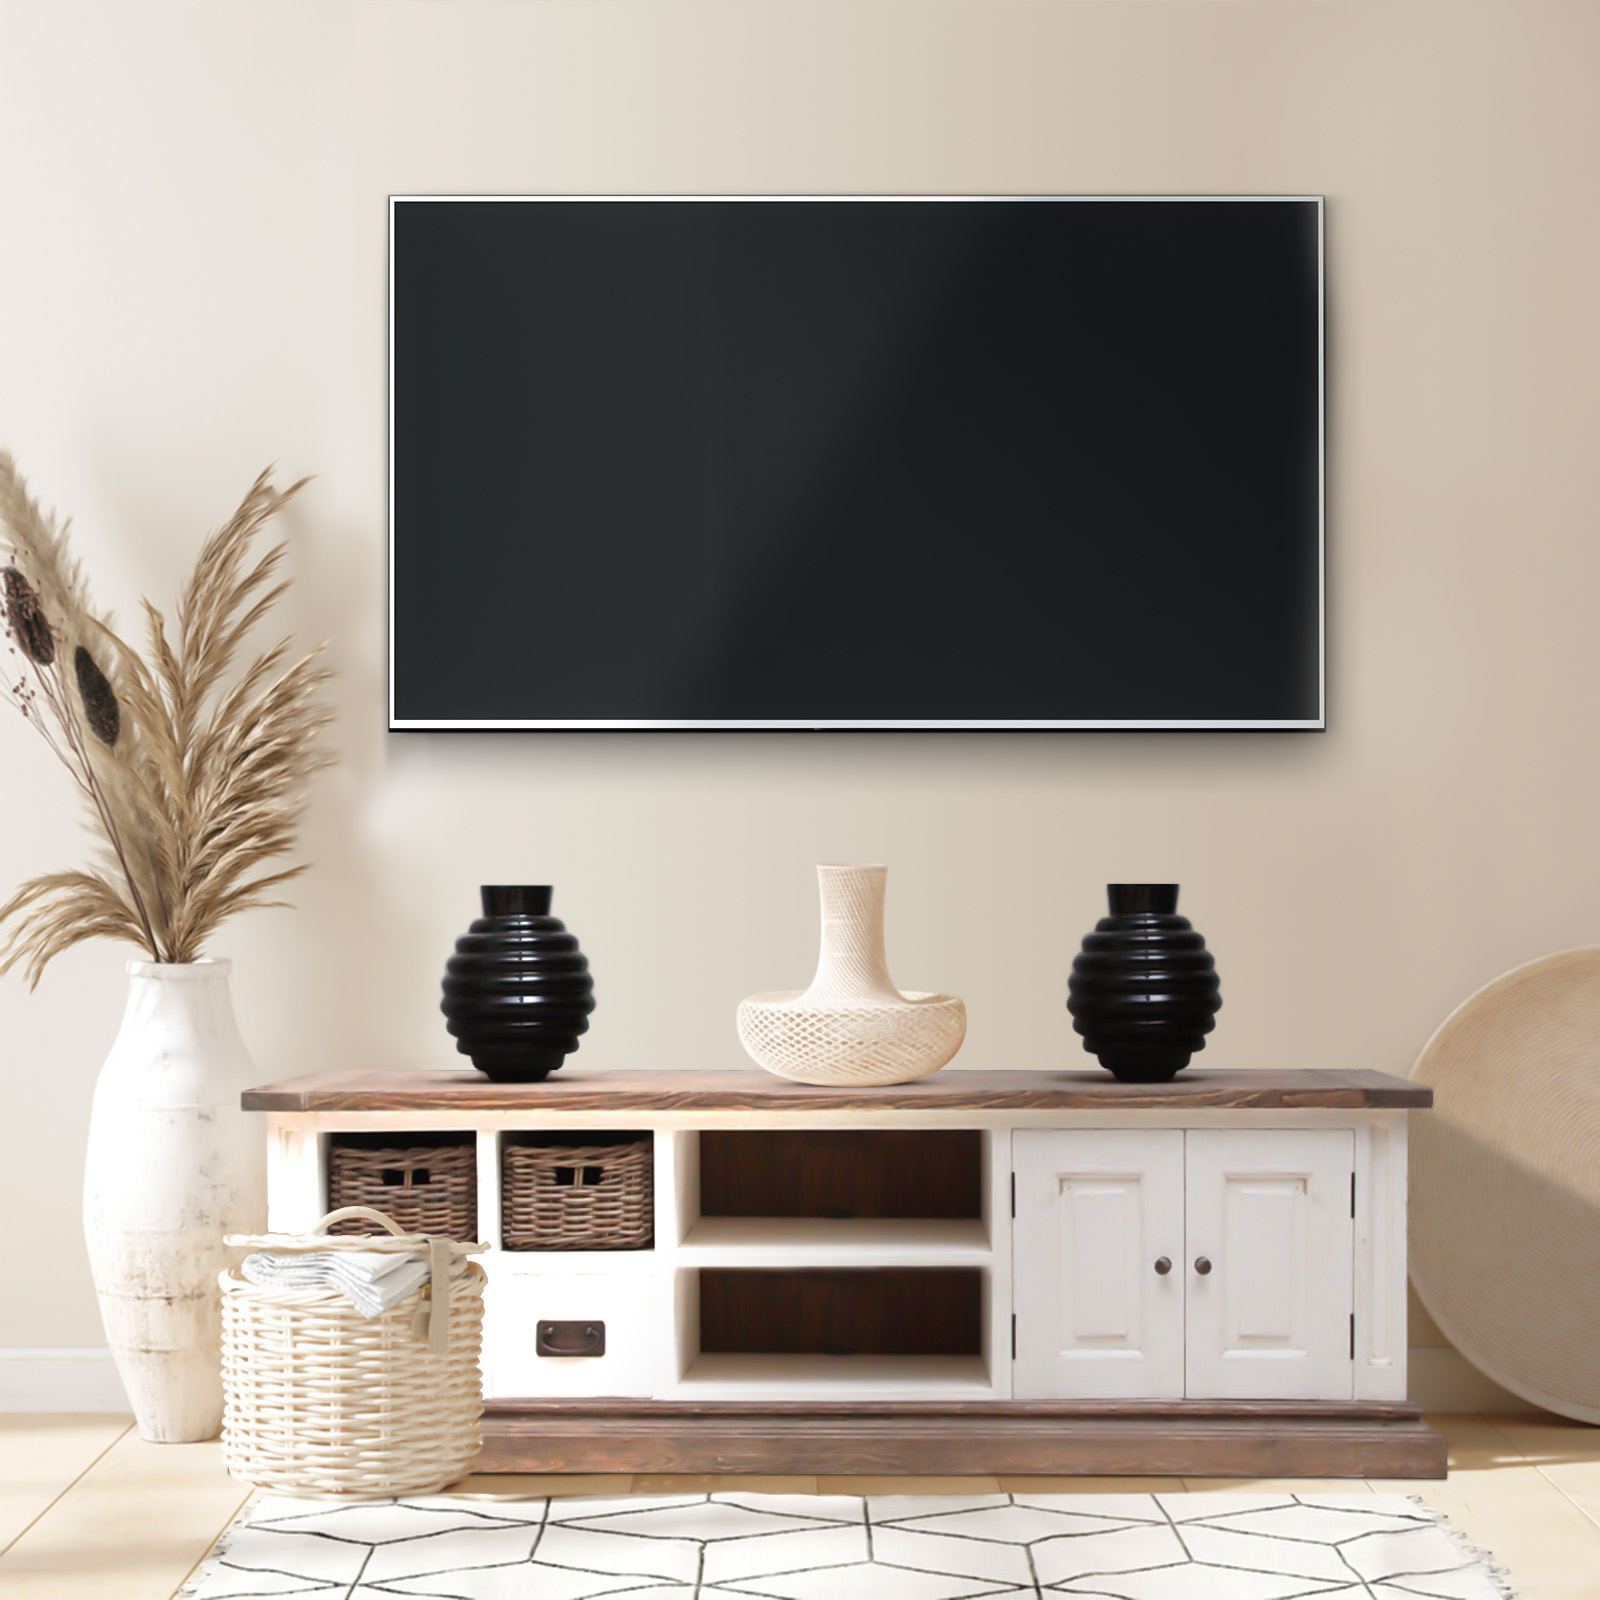 Meuble Tv Chic - Meuble Tv En Pin Massif Thani Khahomedesign[mjhdah]http://www.beerandrail.com/wp-content/uploads/2018/02/meuble-tv-confo-elegant-meuble-bas-tv-chic-meubles-conforama-blanc-design-lumiere-led-of-meuble-tv-confo.jpg